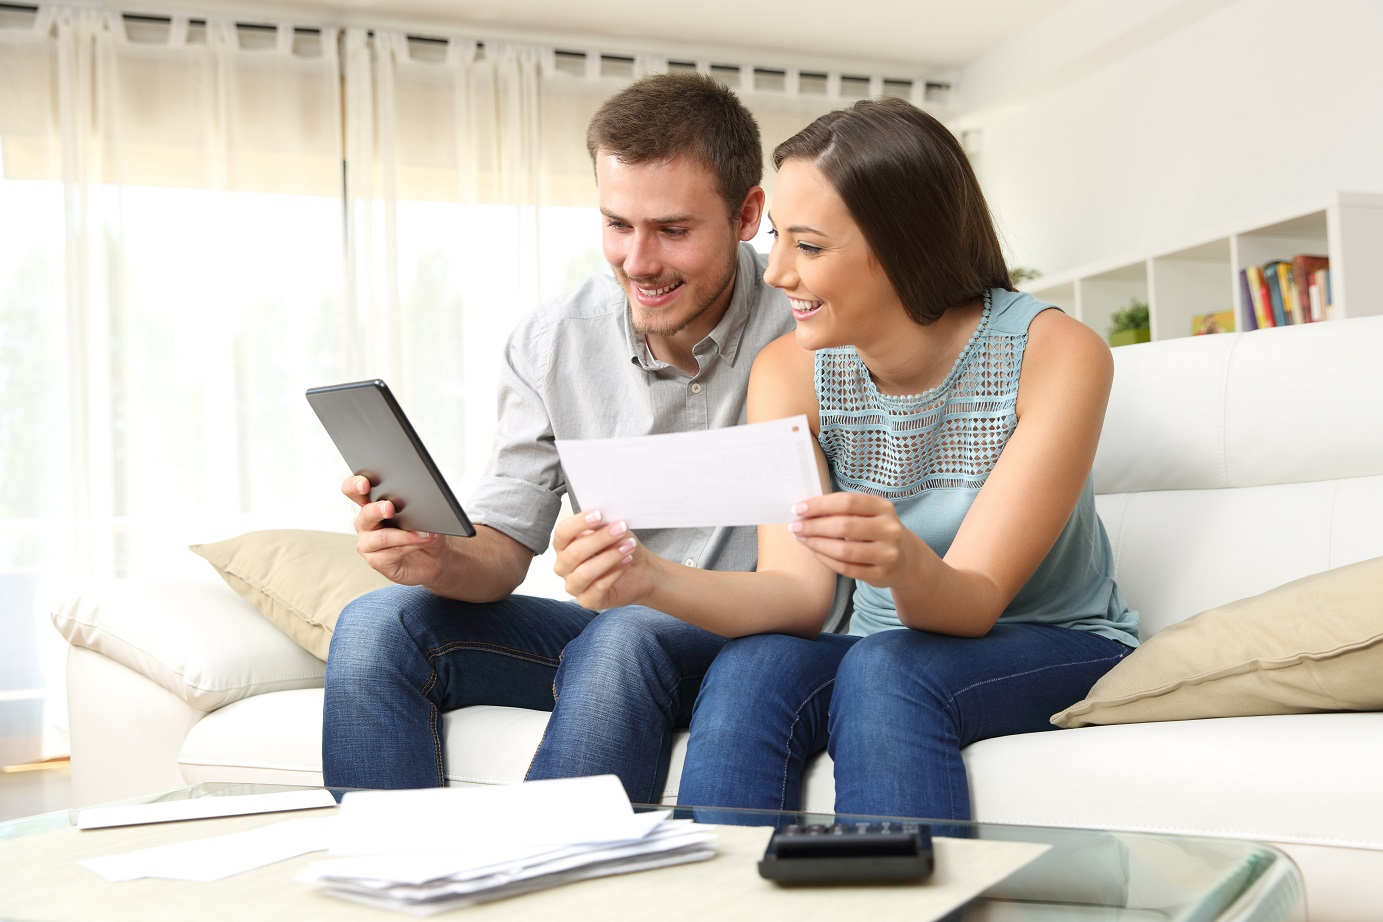 young-smiling-couple-budgeting-on-couch.jpg